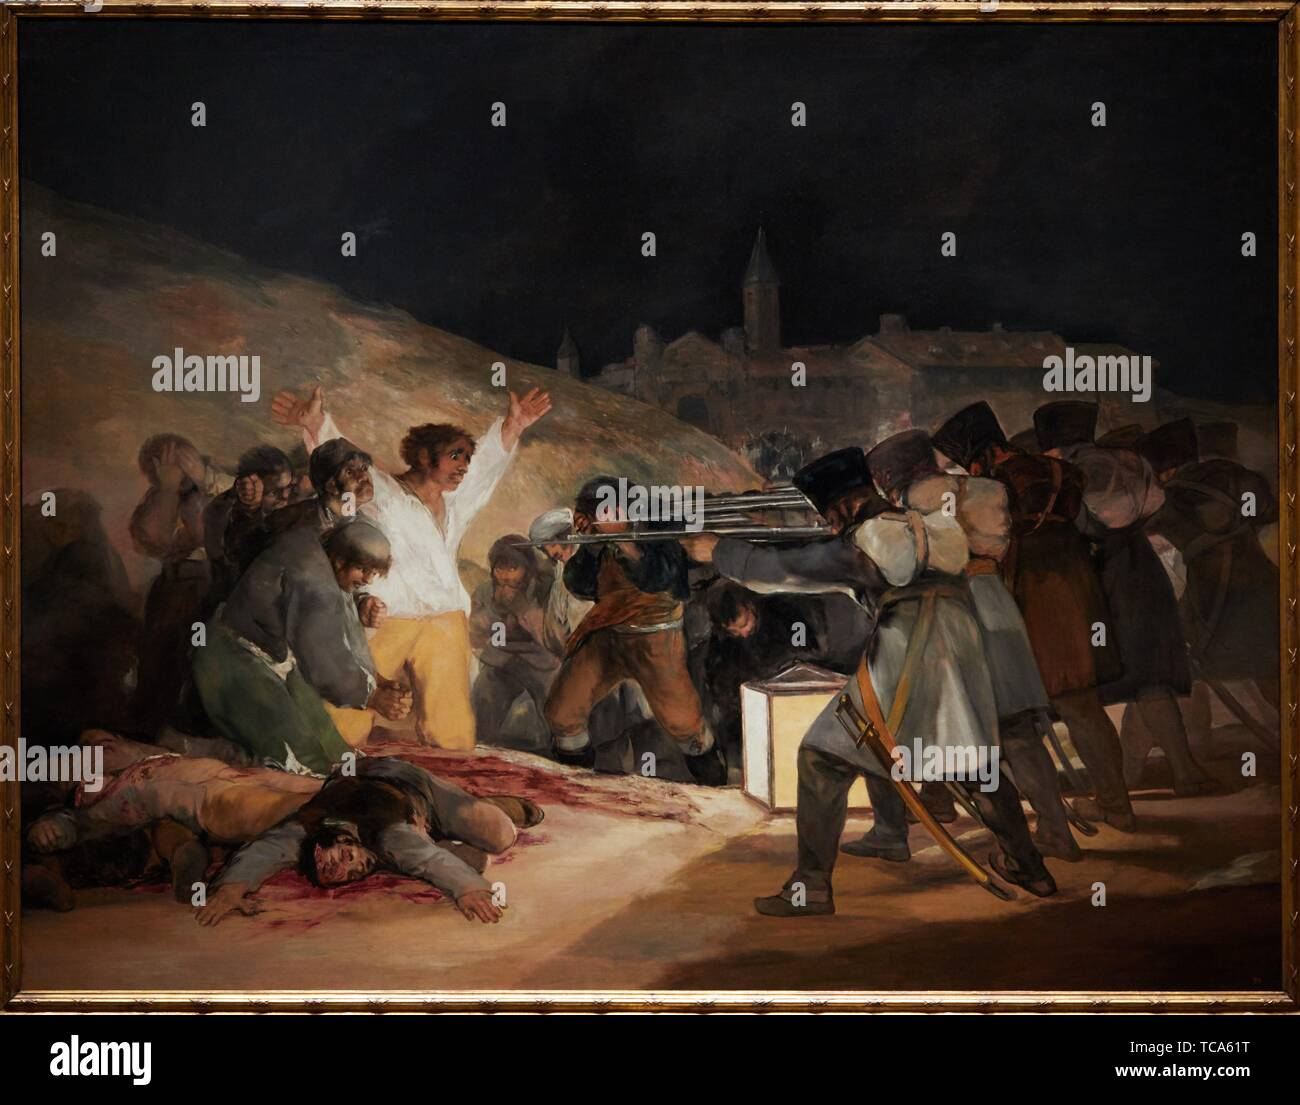 '''The 3rd of May 1808 in Madrid, or ''The Executions'', 1814, Francisco de Goya y Lucientes, Prado Museum, Madrid, Spain, Europe - Stock Image